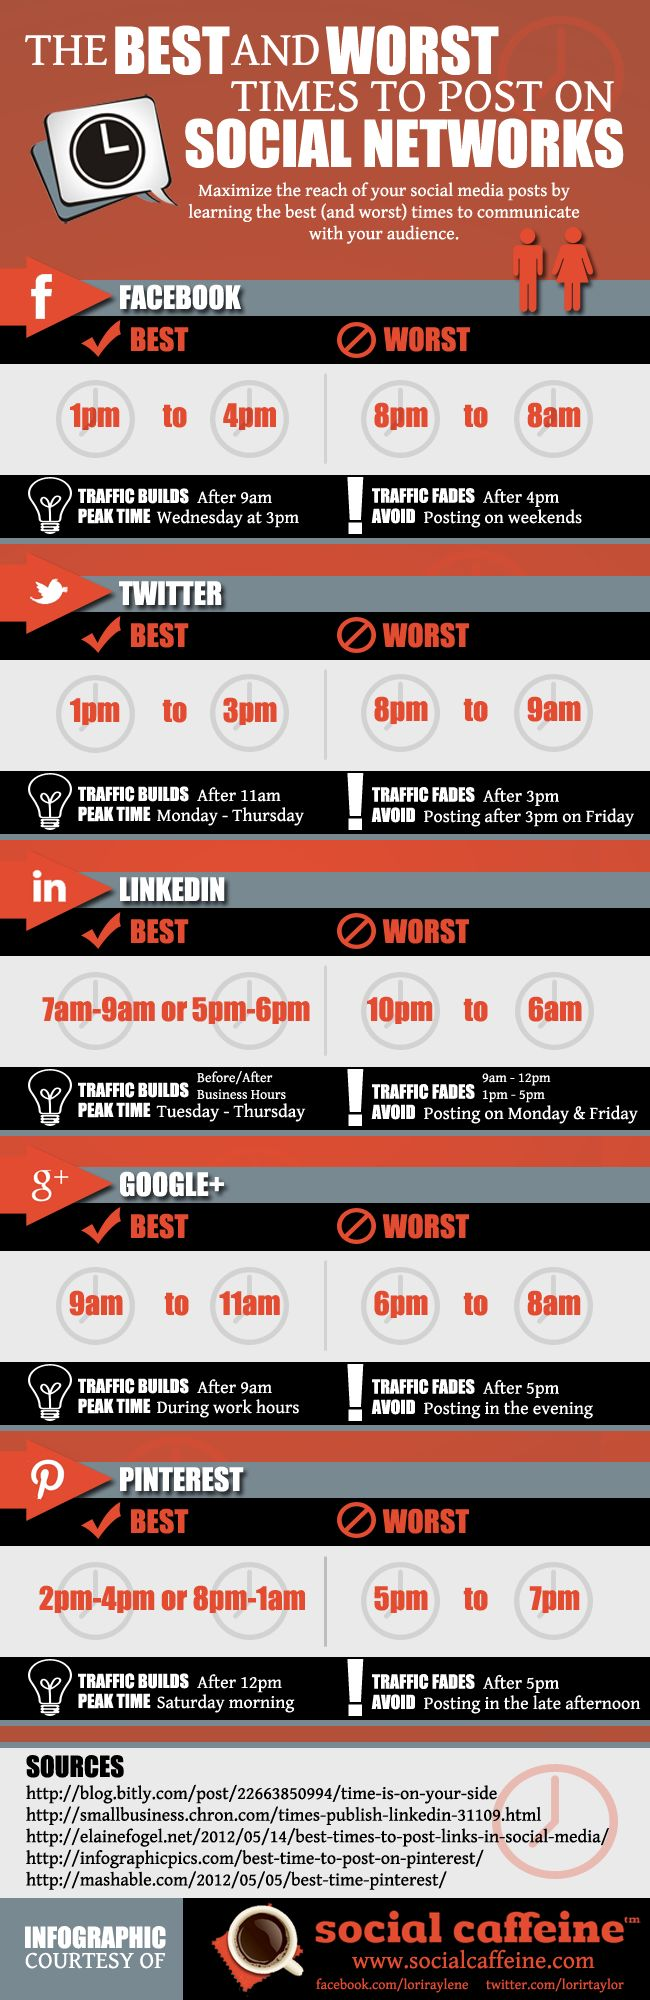 The Best and Worst Times to Post to Social Media [Infographic] image best and worst times to post on social networks -from Business2Community via Yahoo Small Business Advisor